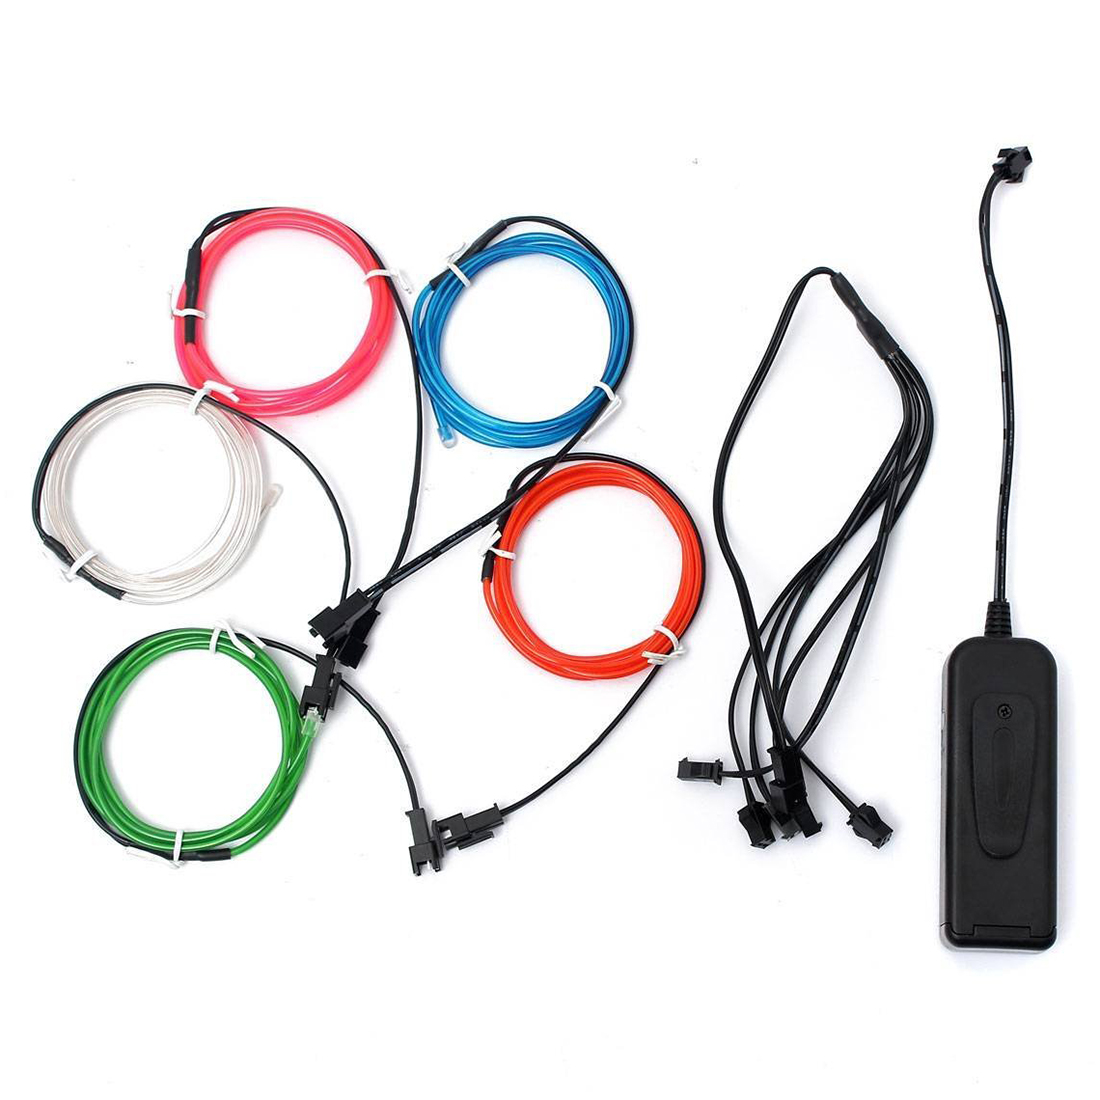 5x1m EL Wire EL Cable Neon Lightning Light Cord For Christmas Party Rave Parties Halloween Costume + Battery Box, Five Colors